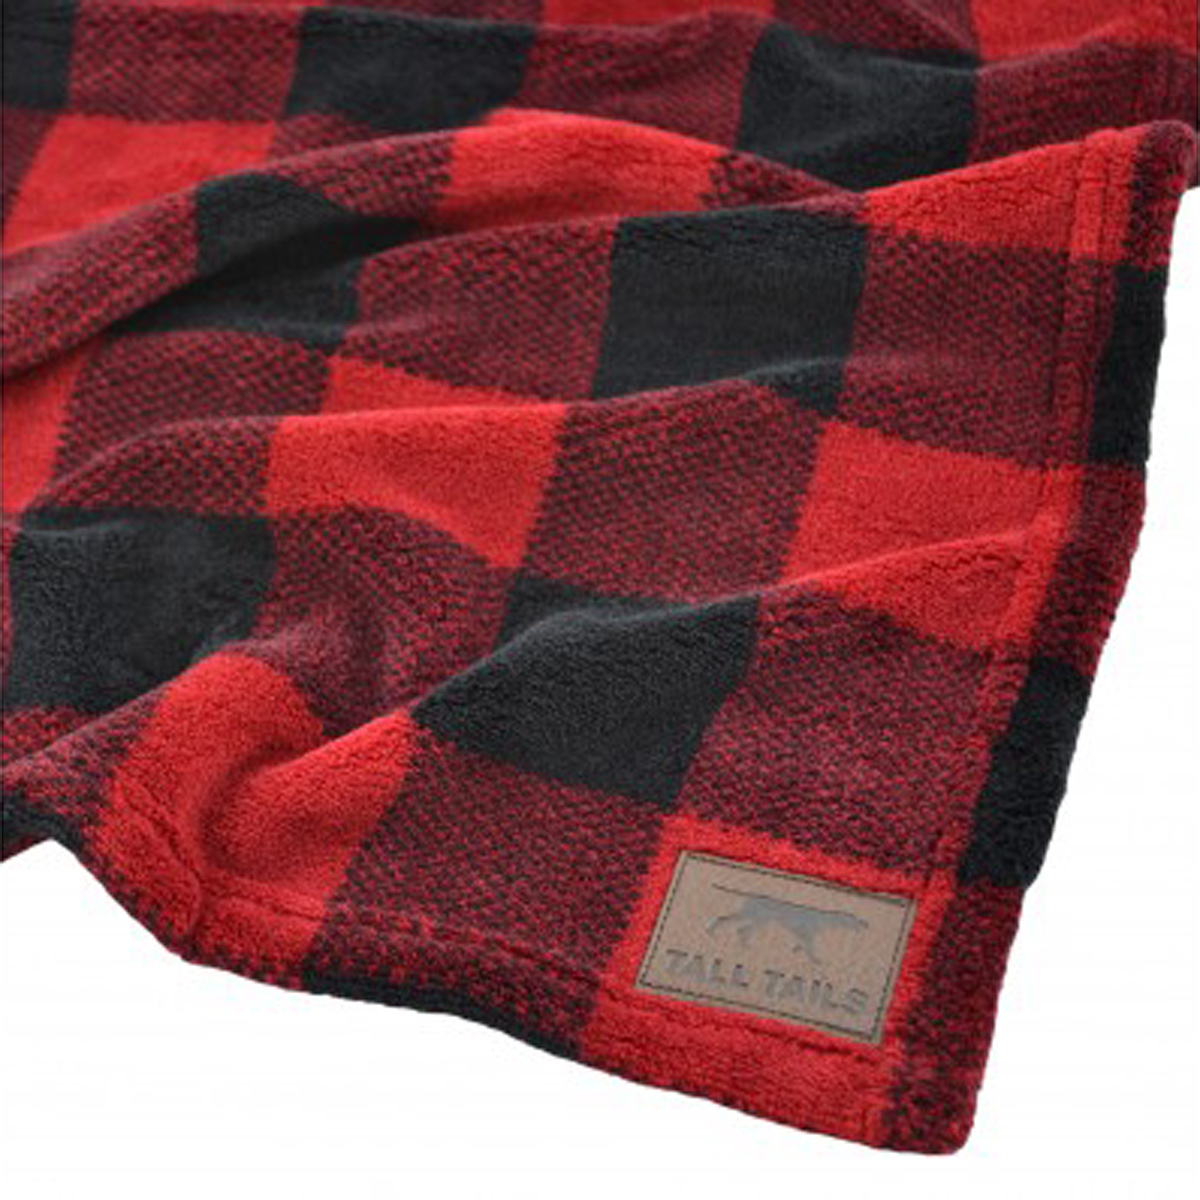 Shop a great selection of Plaid Blankets & Throws and other Blankets & Throws Featured Blankets & Throws online at Pendleton Woolen Mills. Premium clothing and accessories since Shop Now! FREE SHIPPING ON $+ ORDERS! USE CODE Plaid Blankets and Throws.